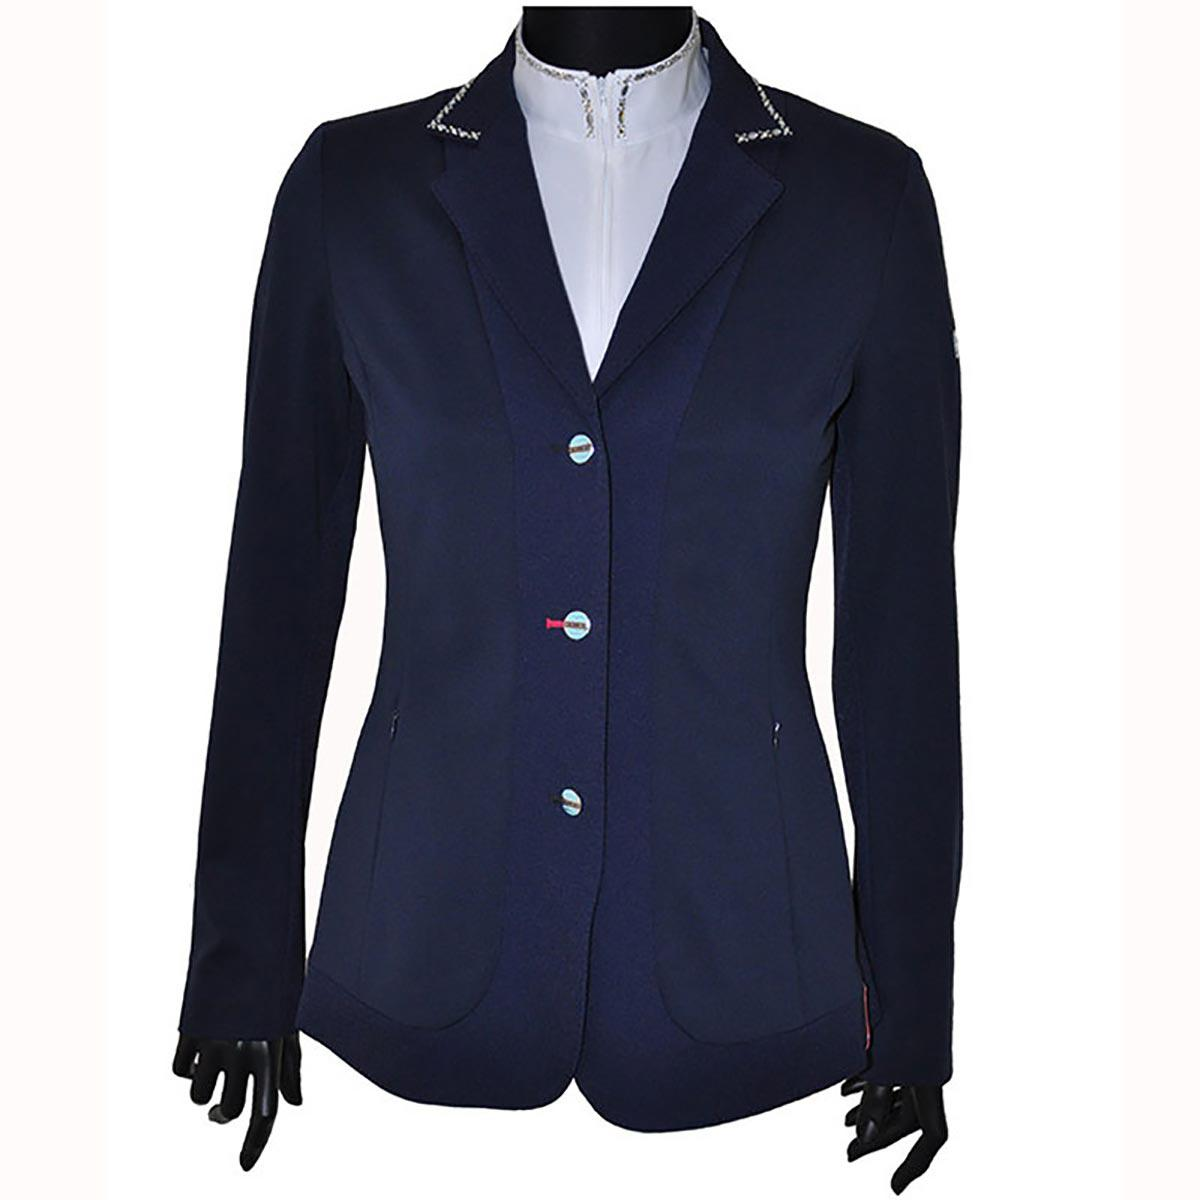 Animo Lora Competition Jacket Reduced For Clearance Vi